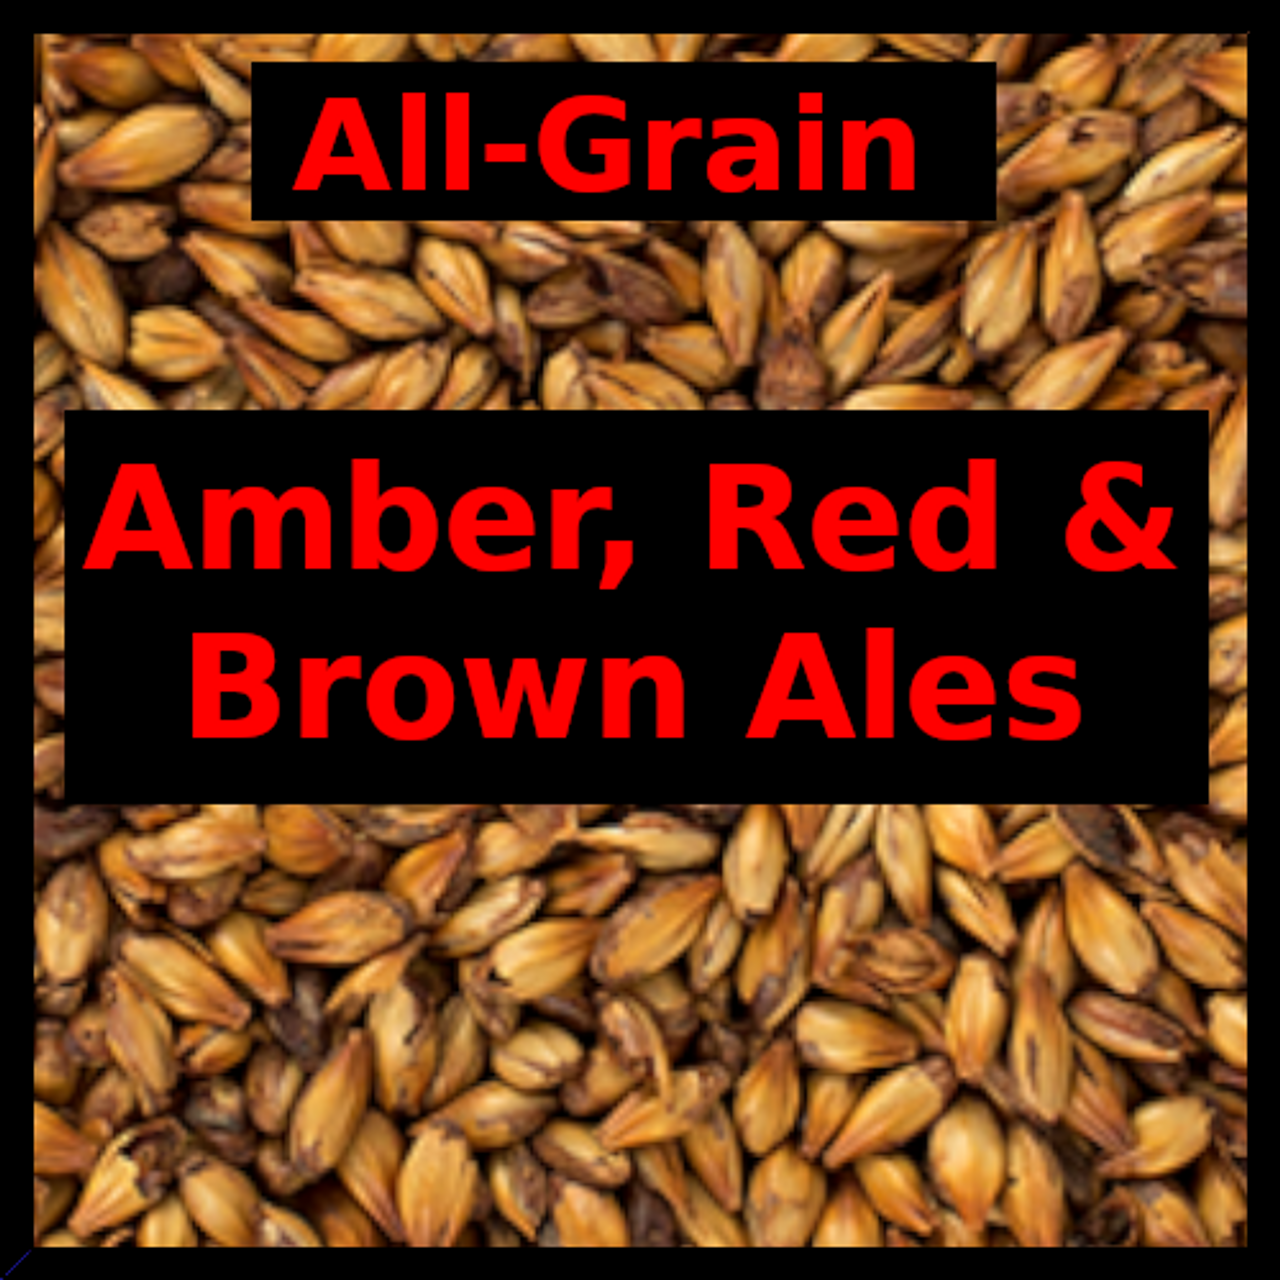 Amber, Red & Brown Ales - All Grain